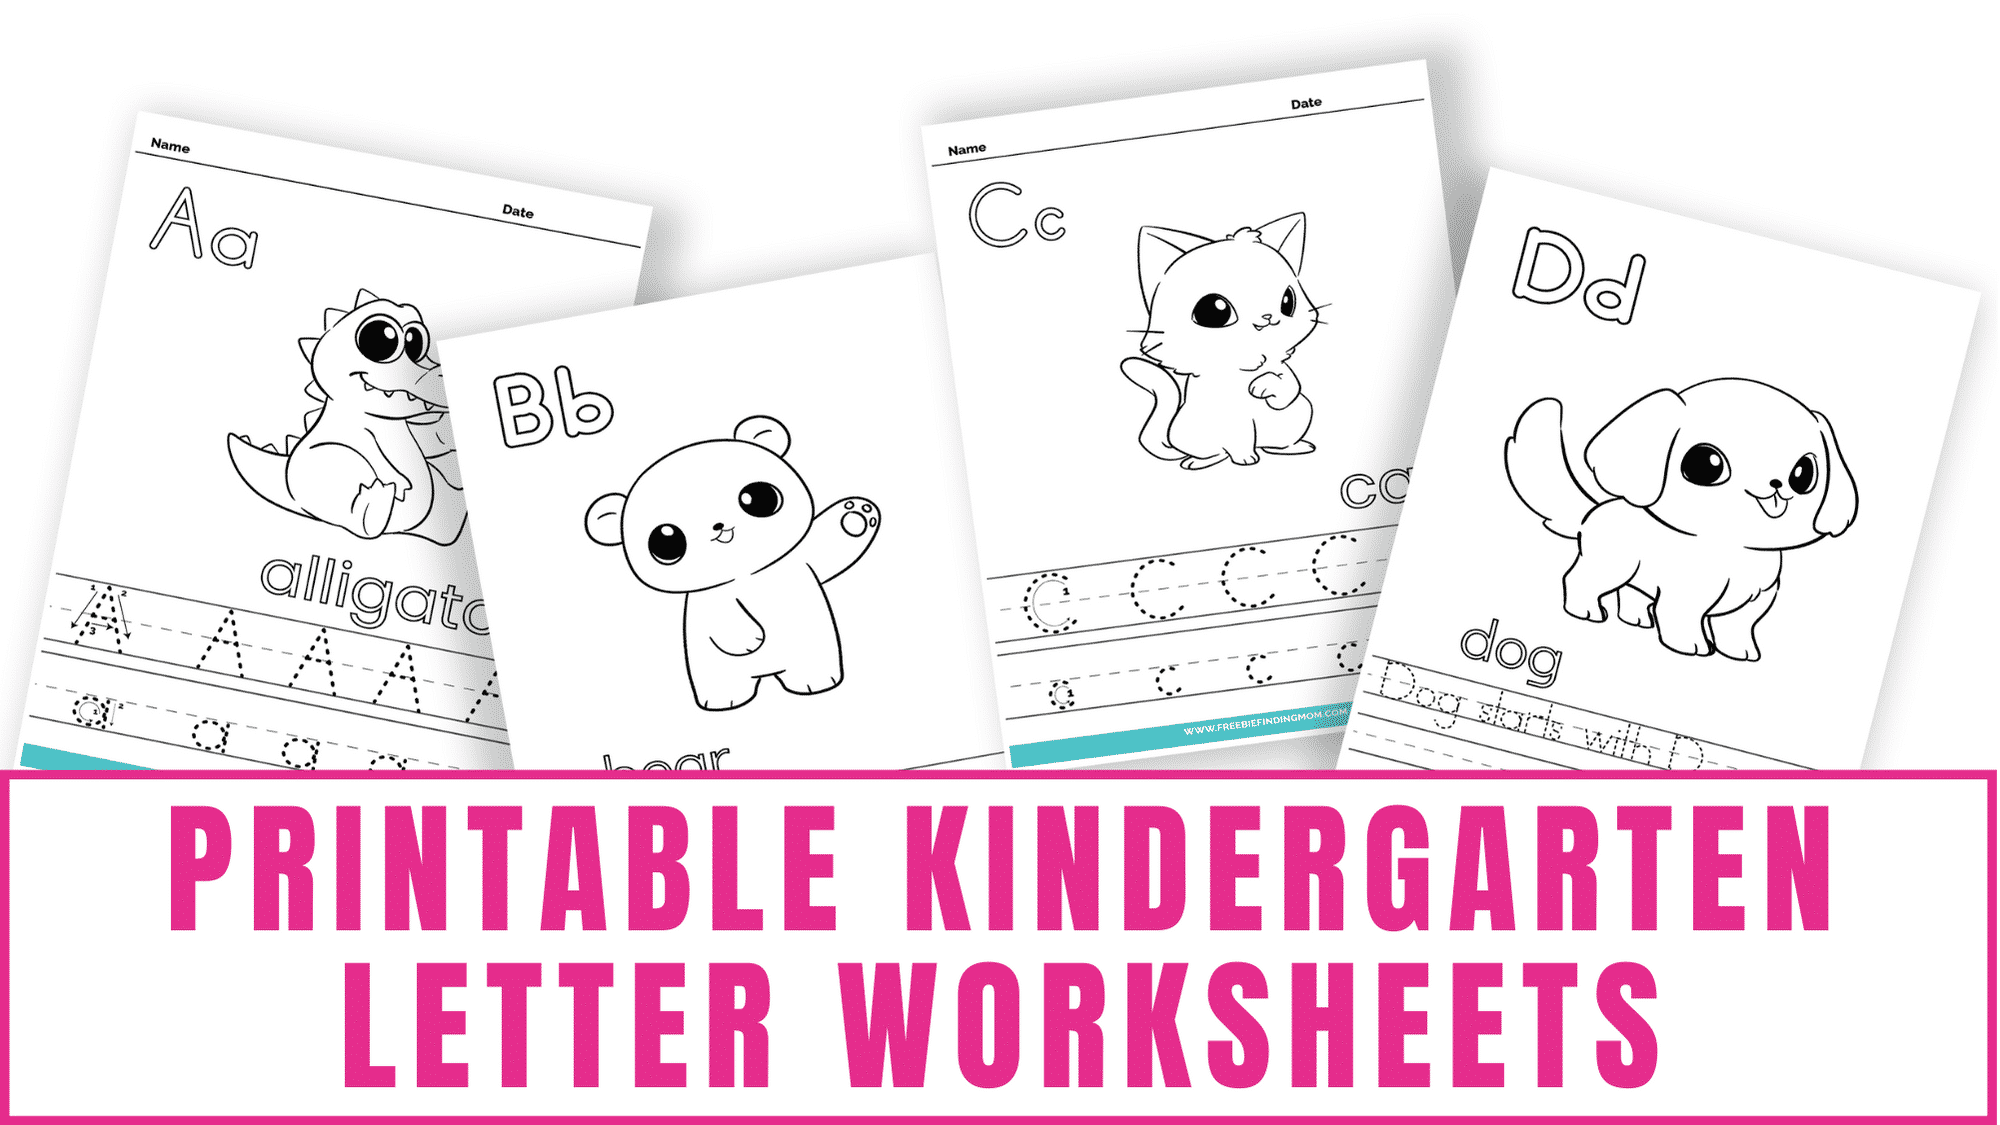 These cute printable kindergarten letter worksheets focus on letter formation and words that start with letters of the alphabet. You can also incorporate letter sound learning as well.